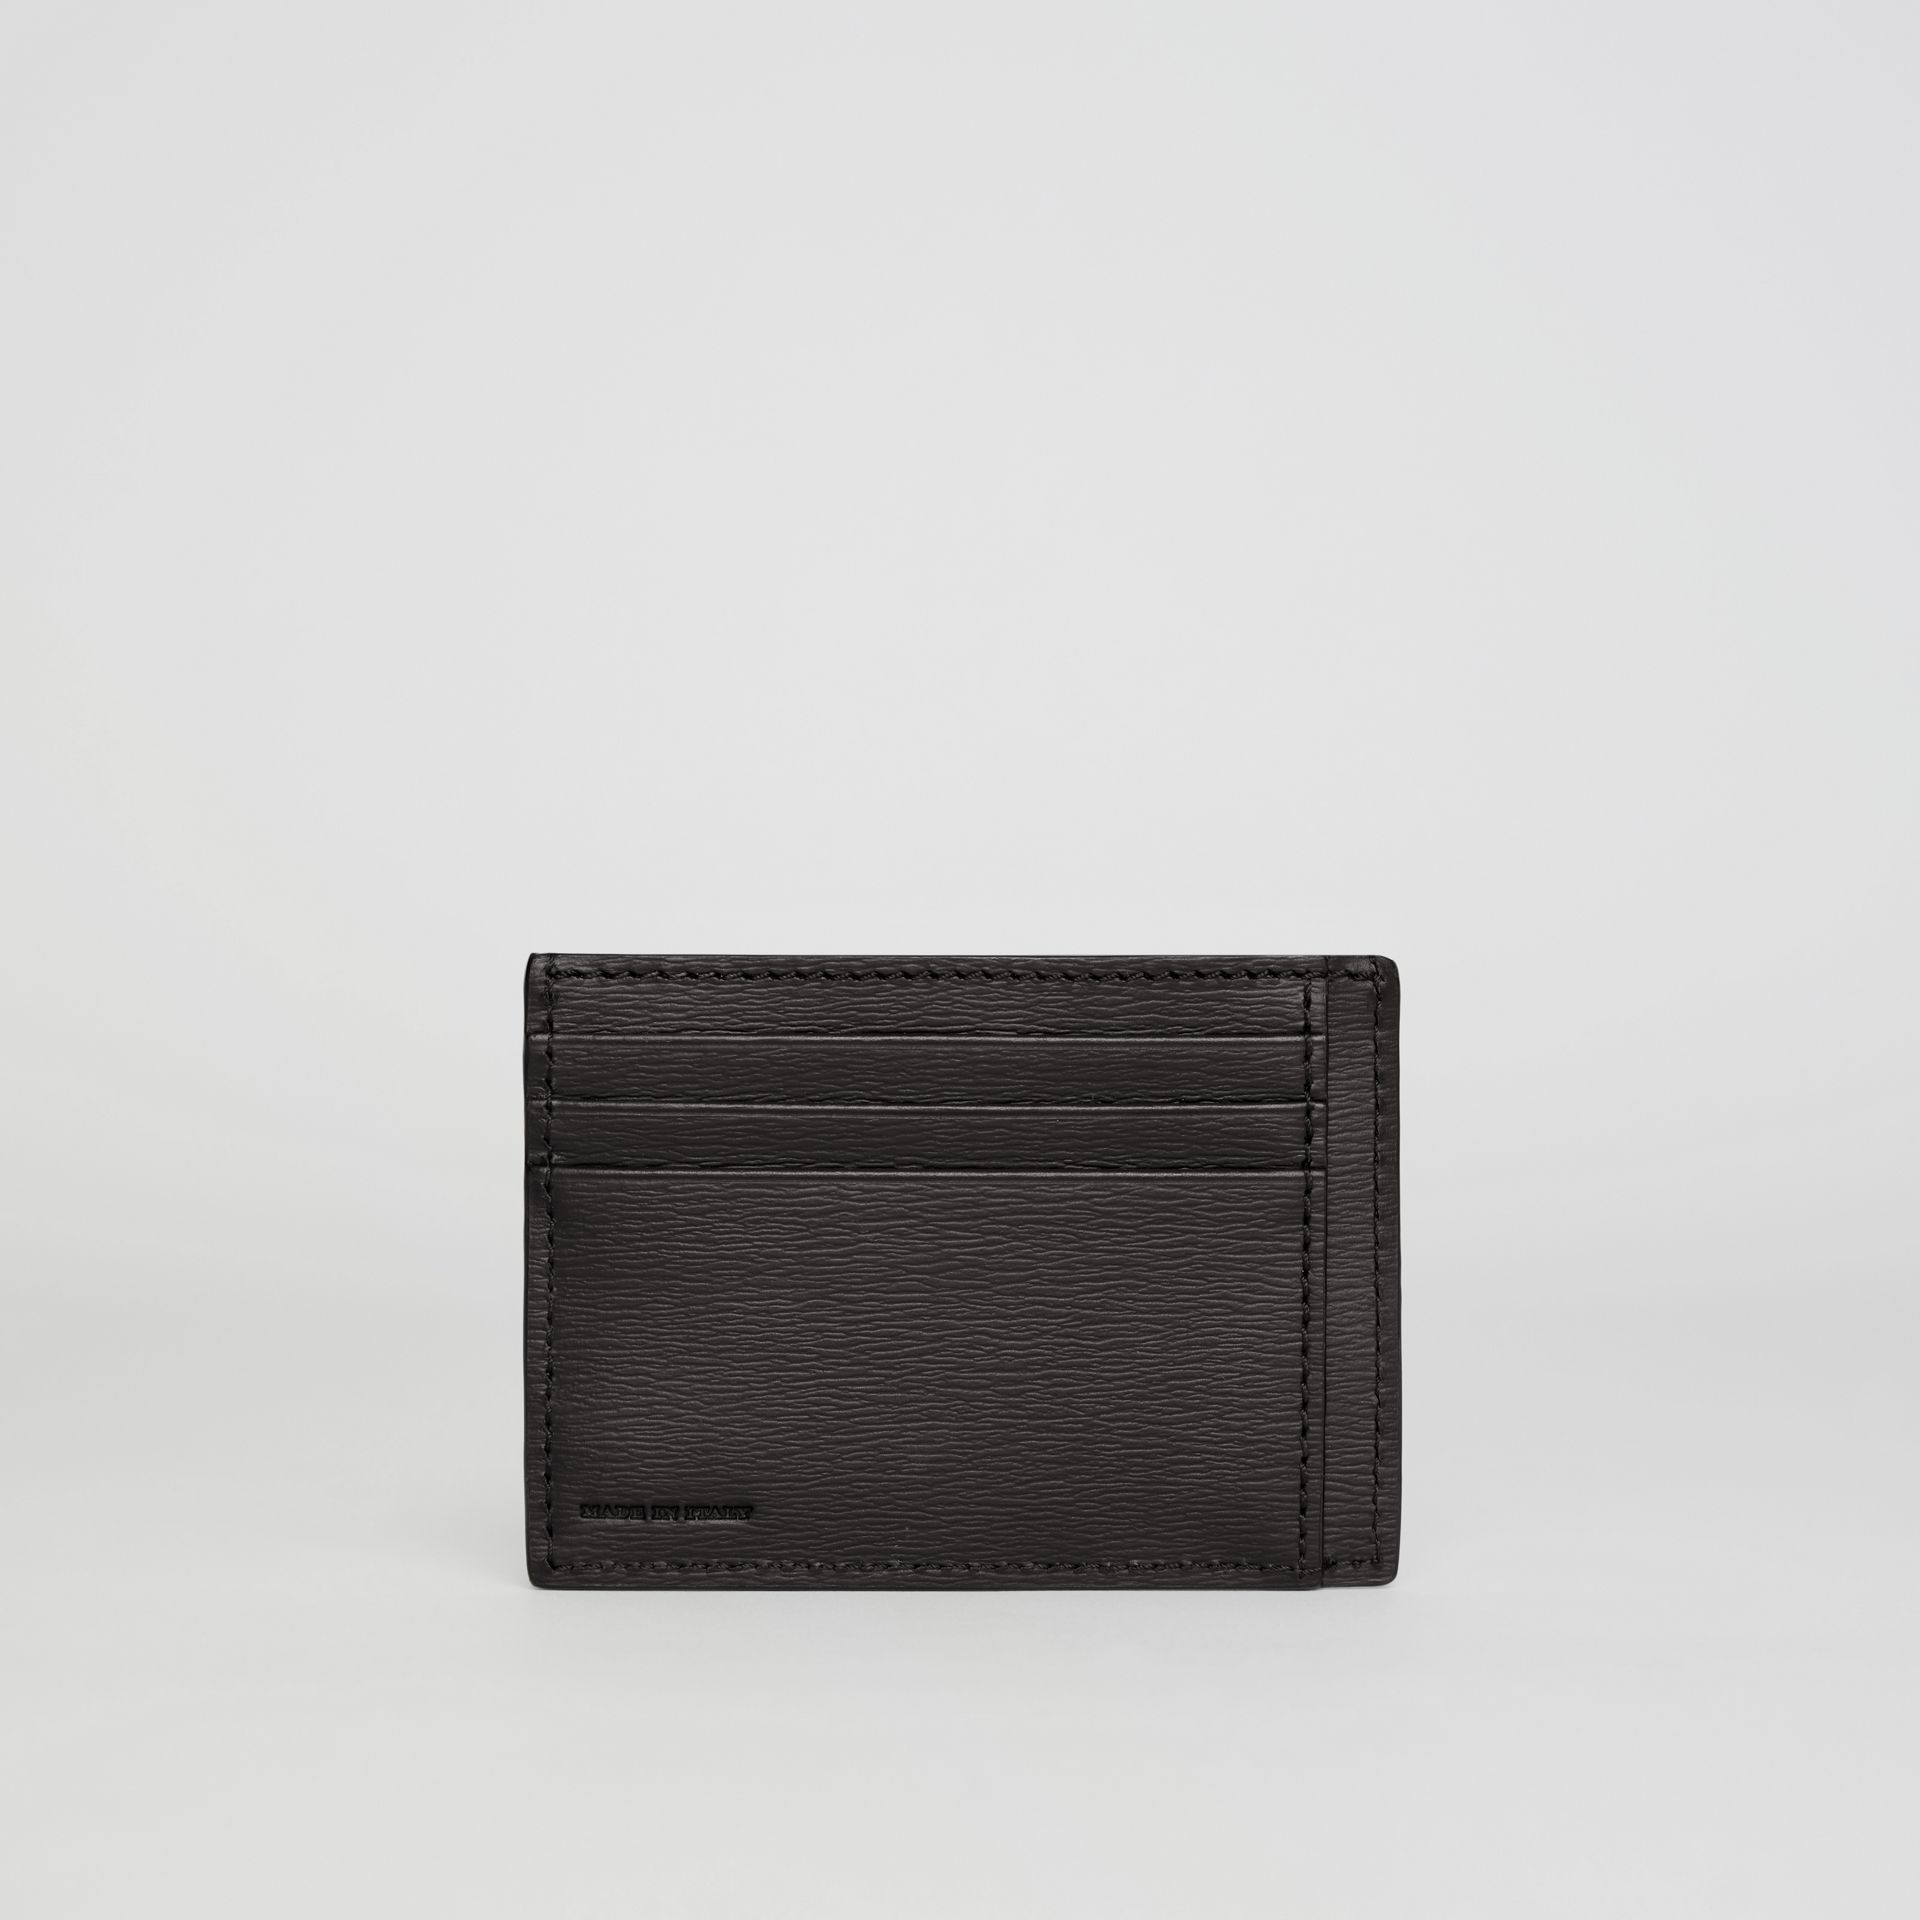 London Leather Card Case in Black - Men | Burberry Australia - gallery image 2